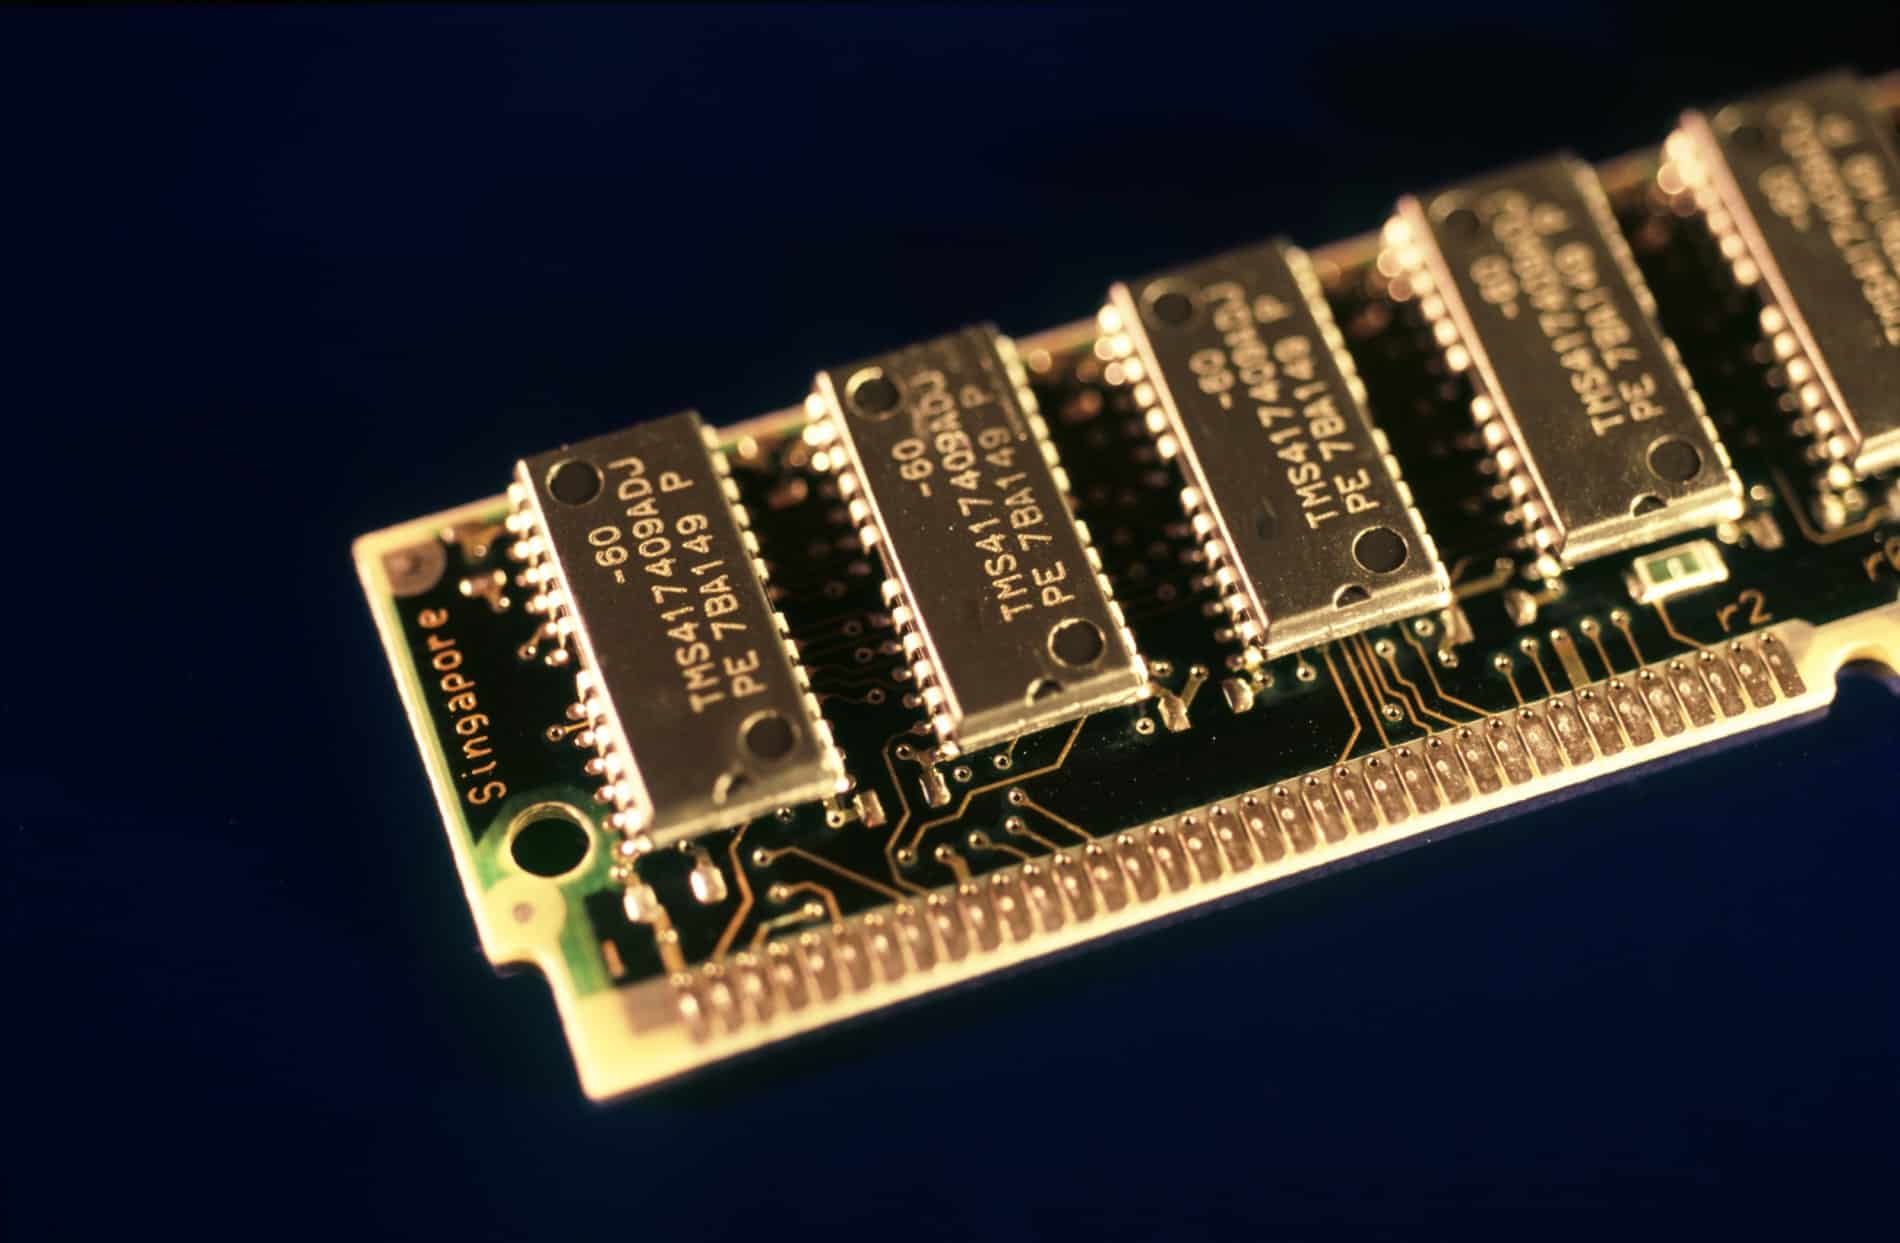 Researchers Have Discovered a New Process that Could Bring a Terabyte of Memory to Our Pockets